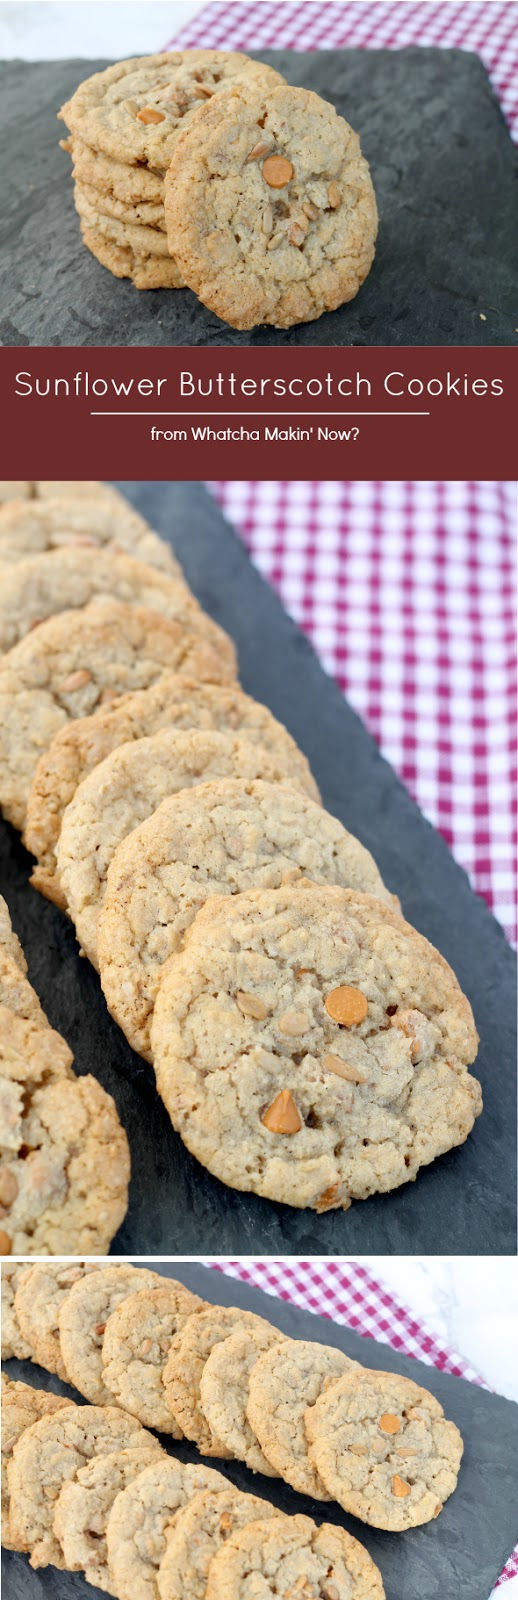 Sunflower Butterscotch Cookies - Bob's Red Mill 50 States of Cookies